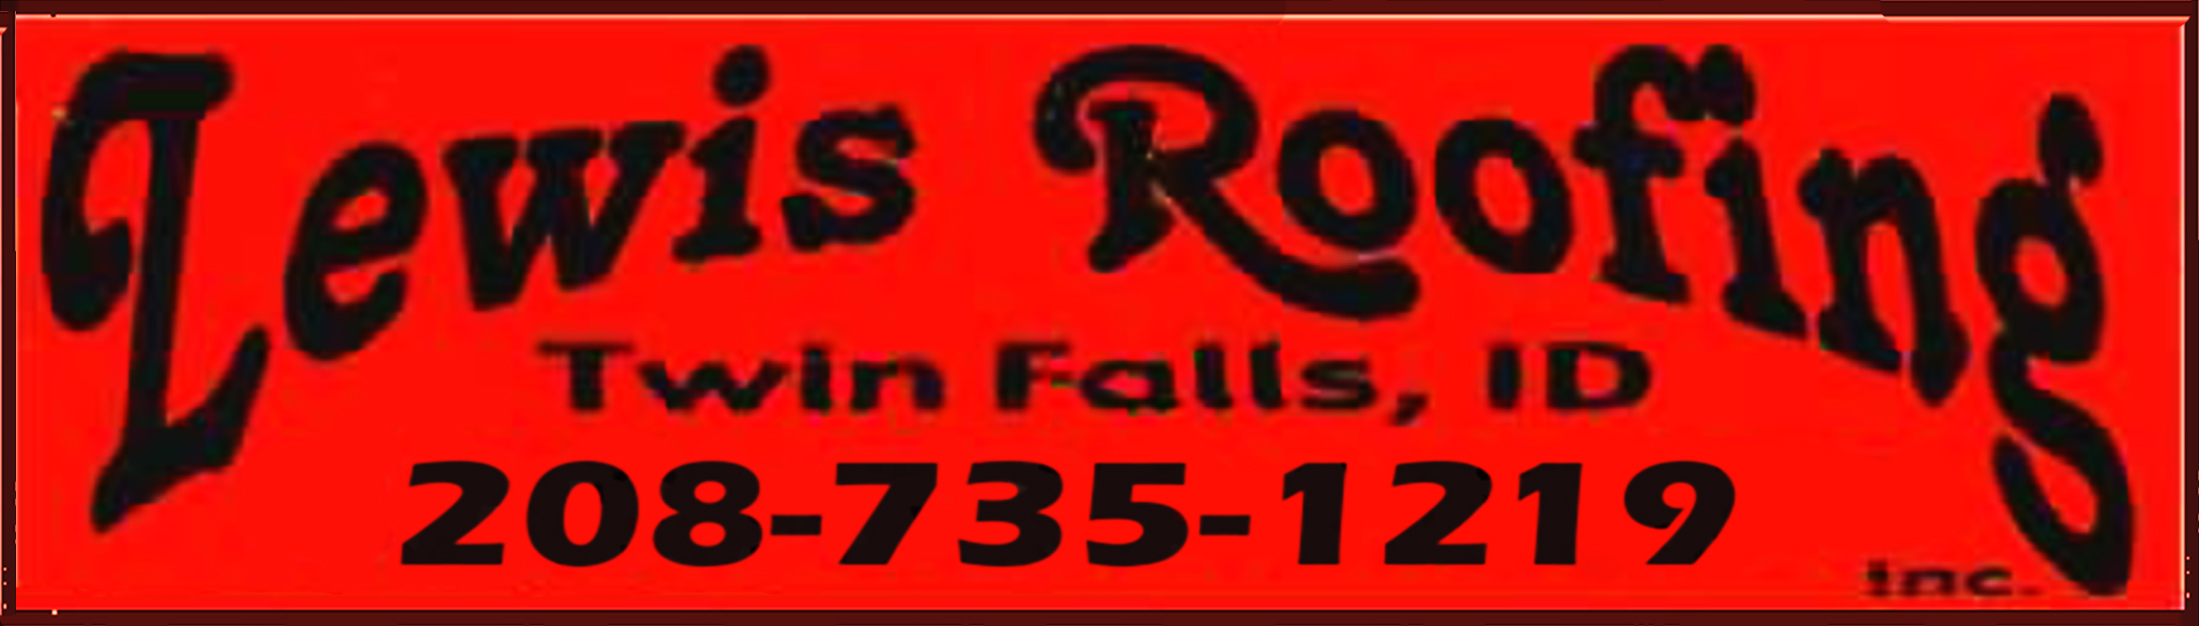 Lewis Roofing, Inc.